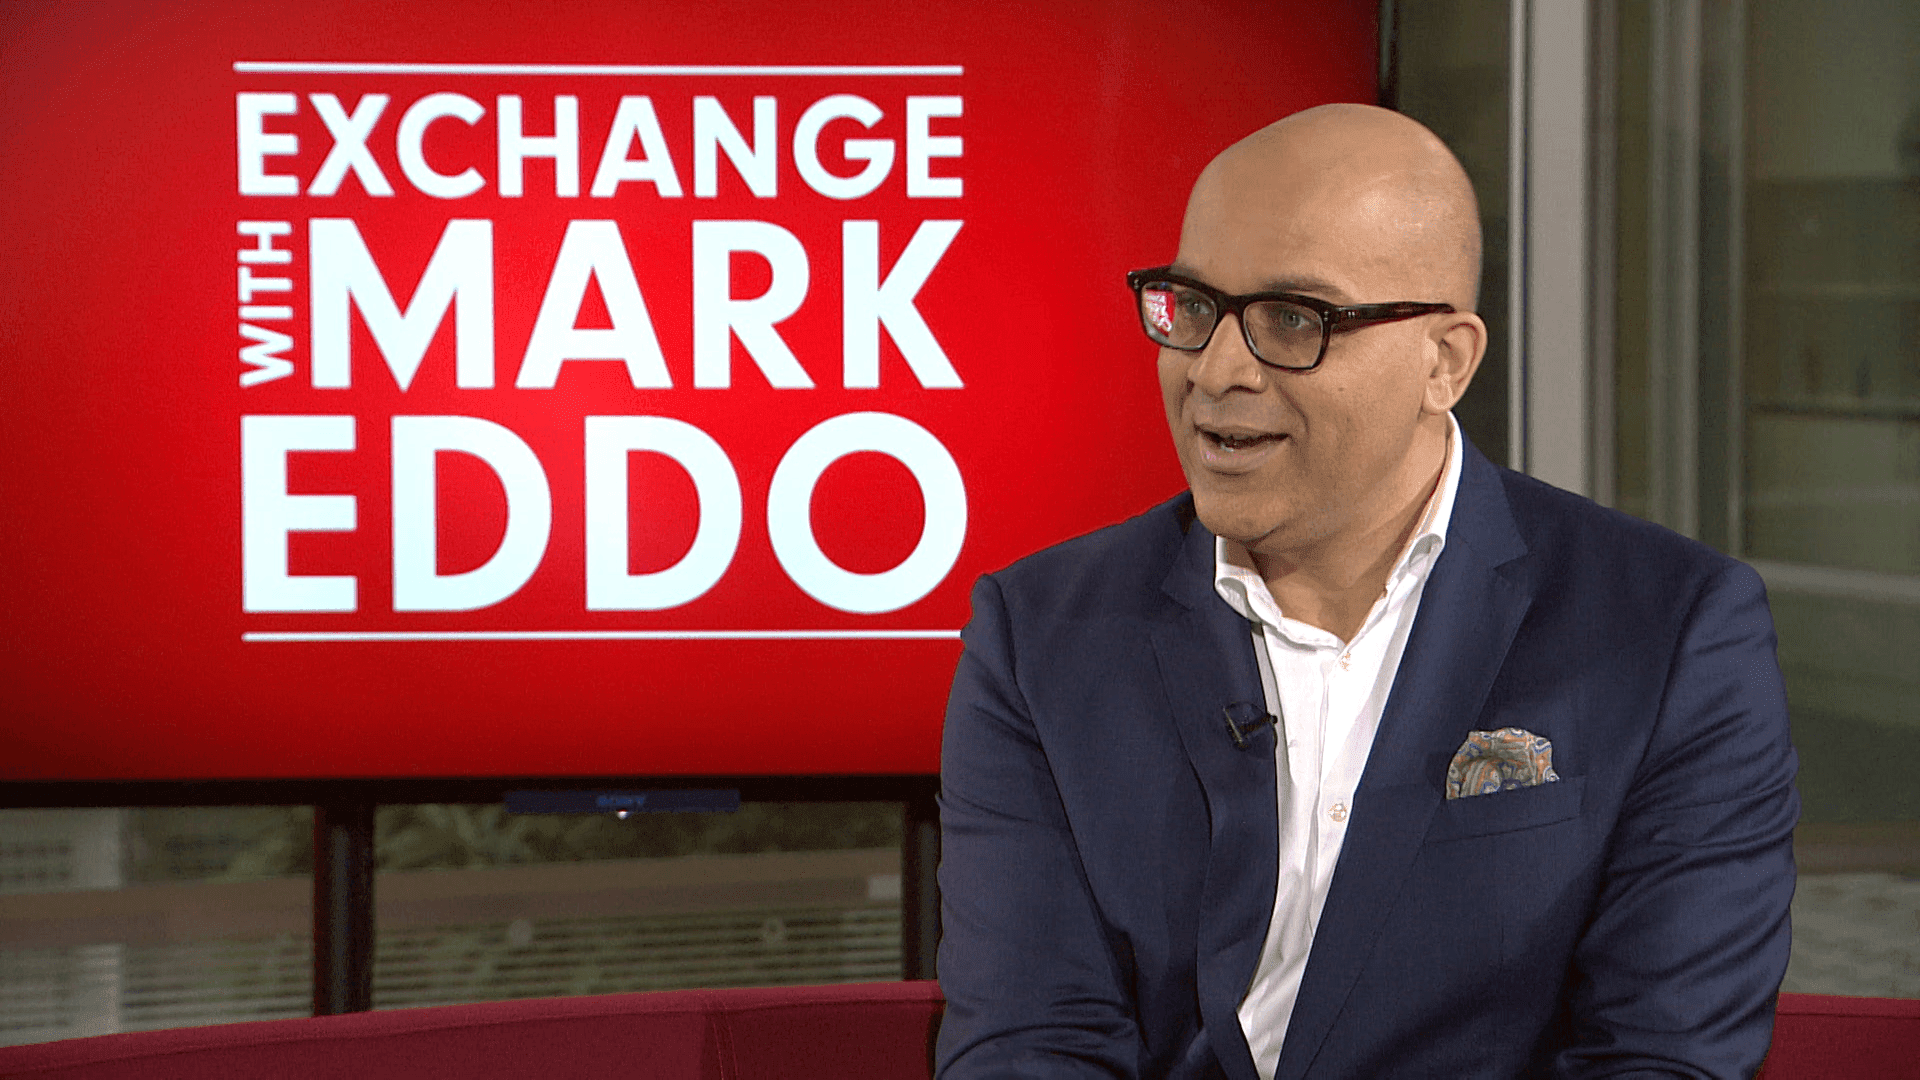 Exchange with Mark Eddo